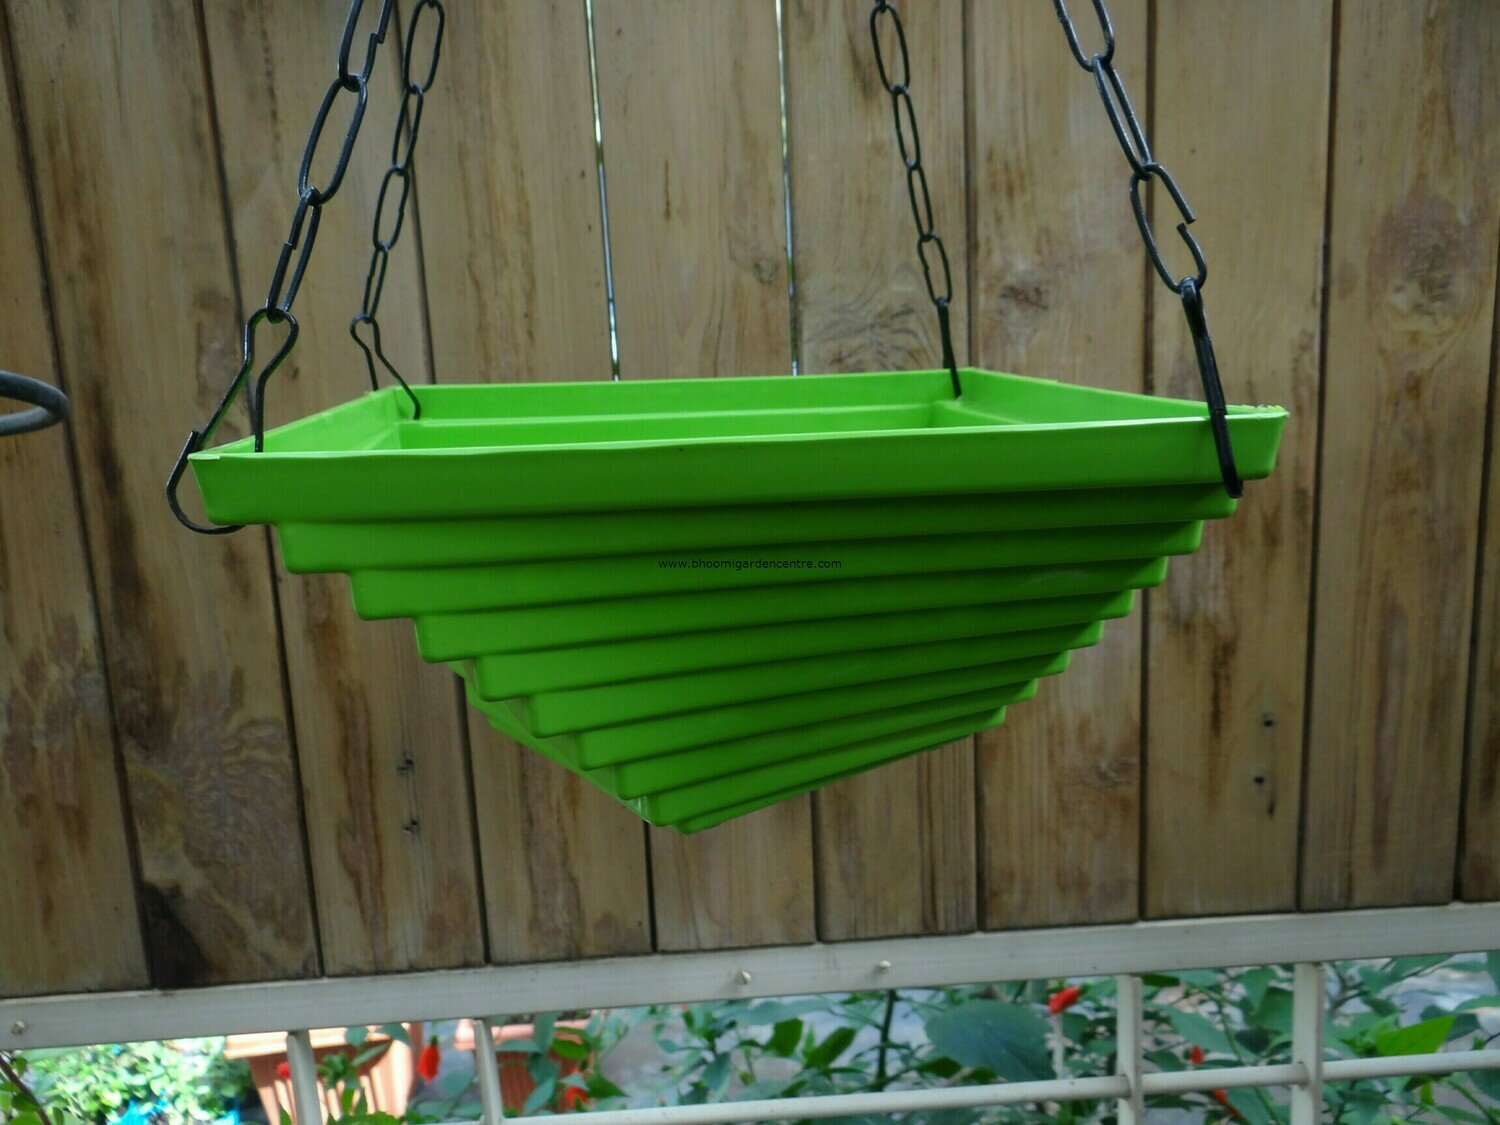 Twister hanging plastic pot 9 inch (multiple colors)